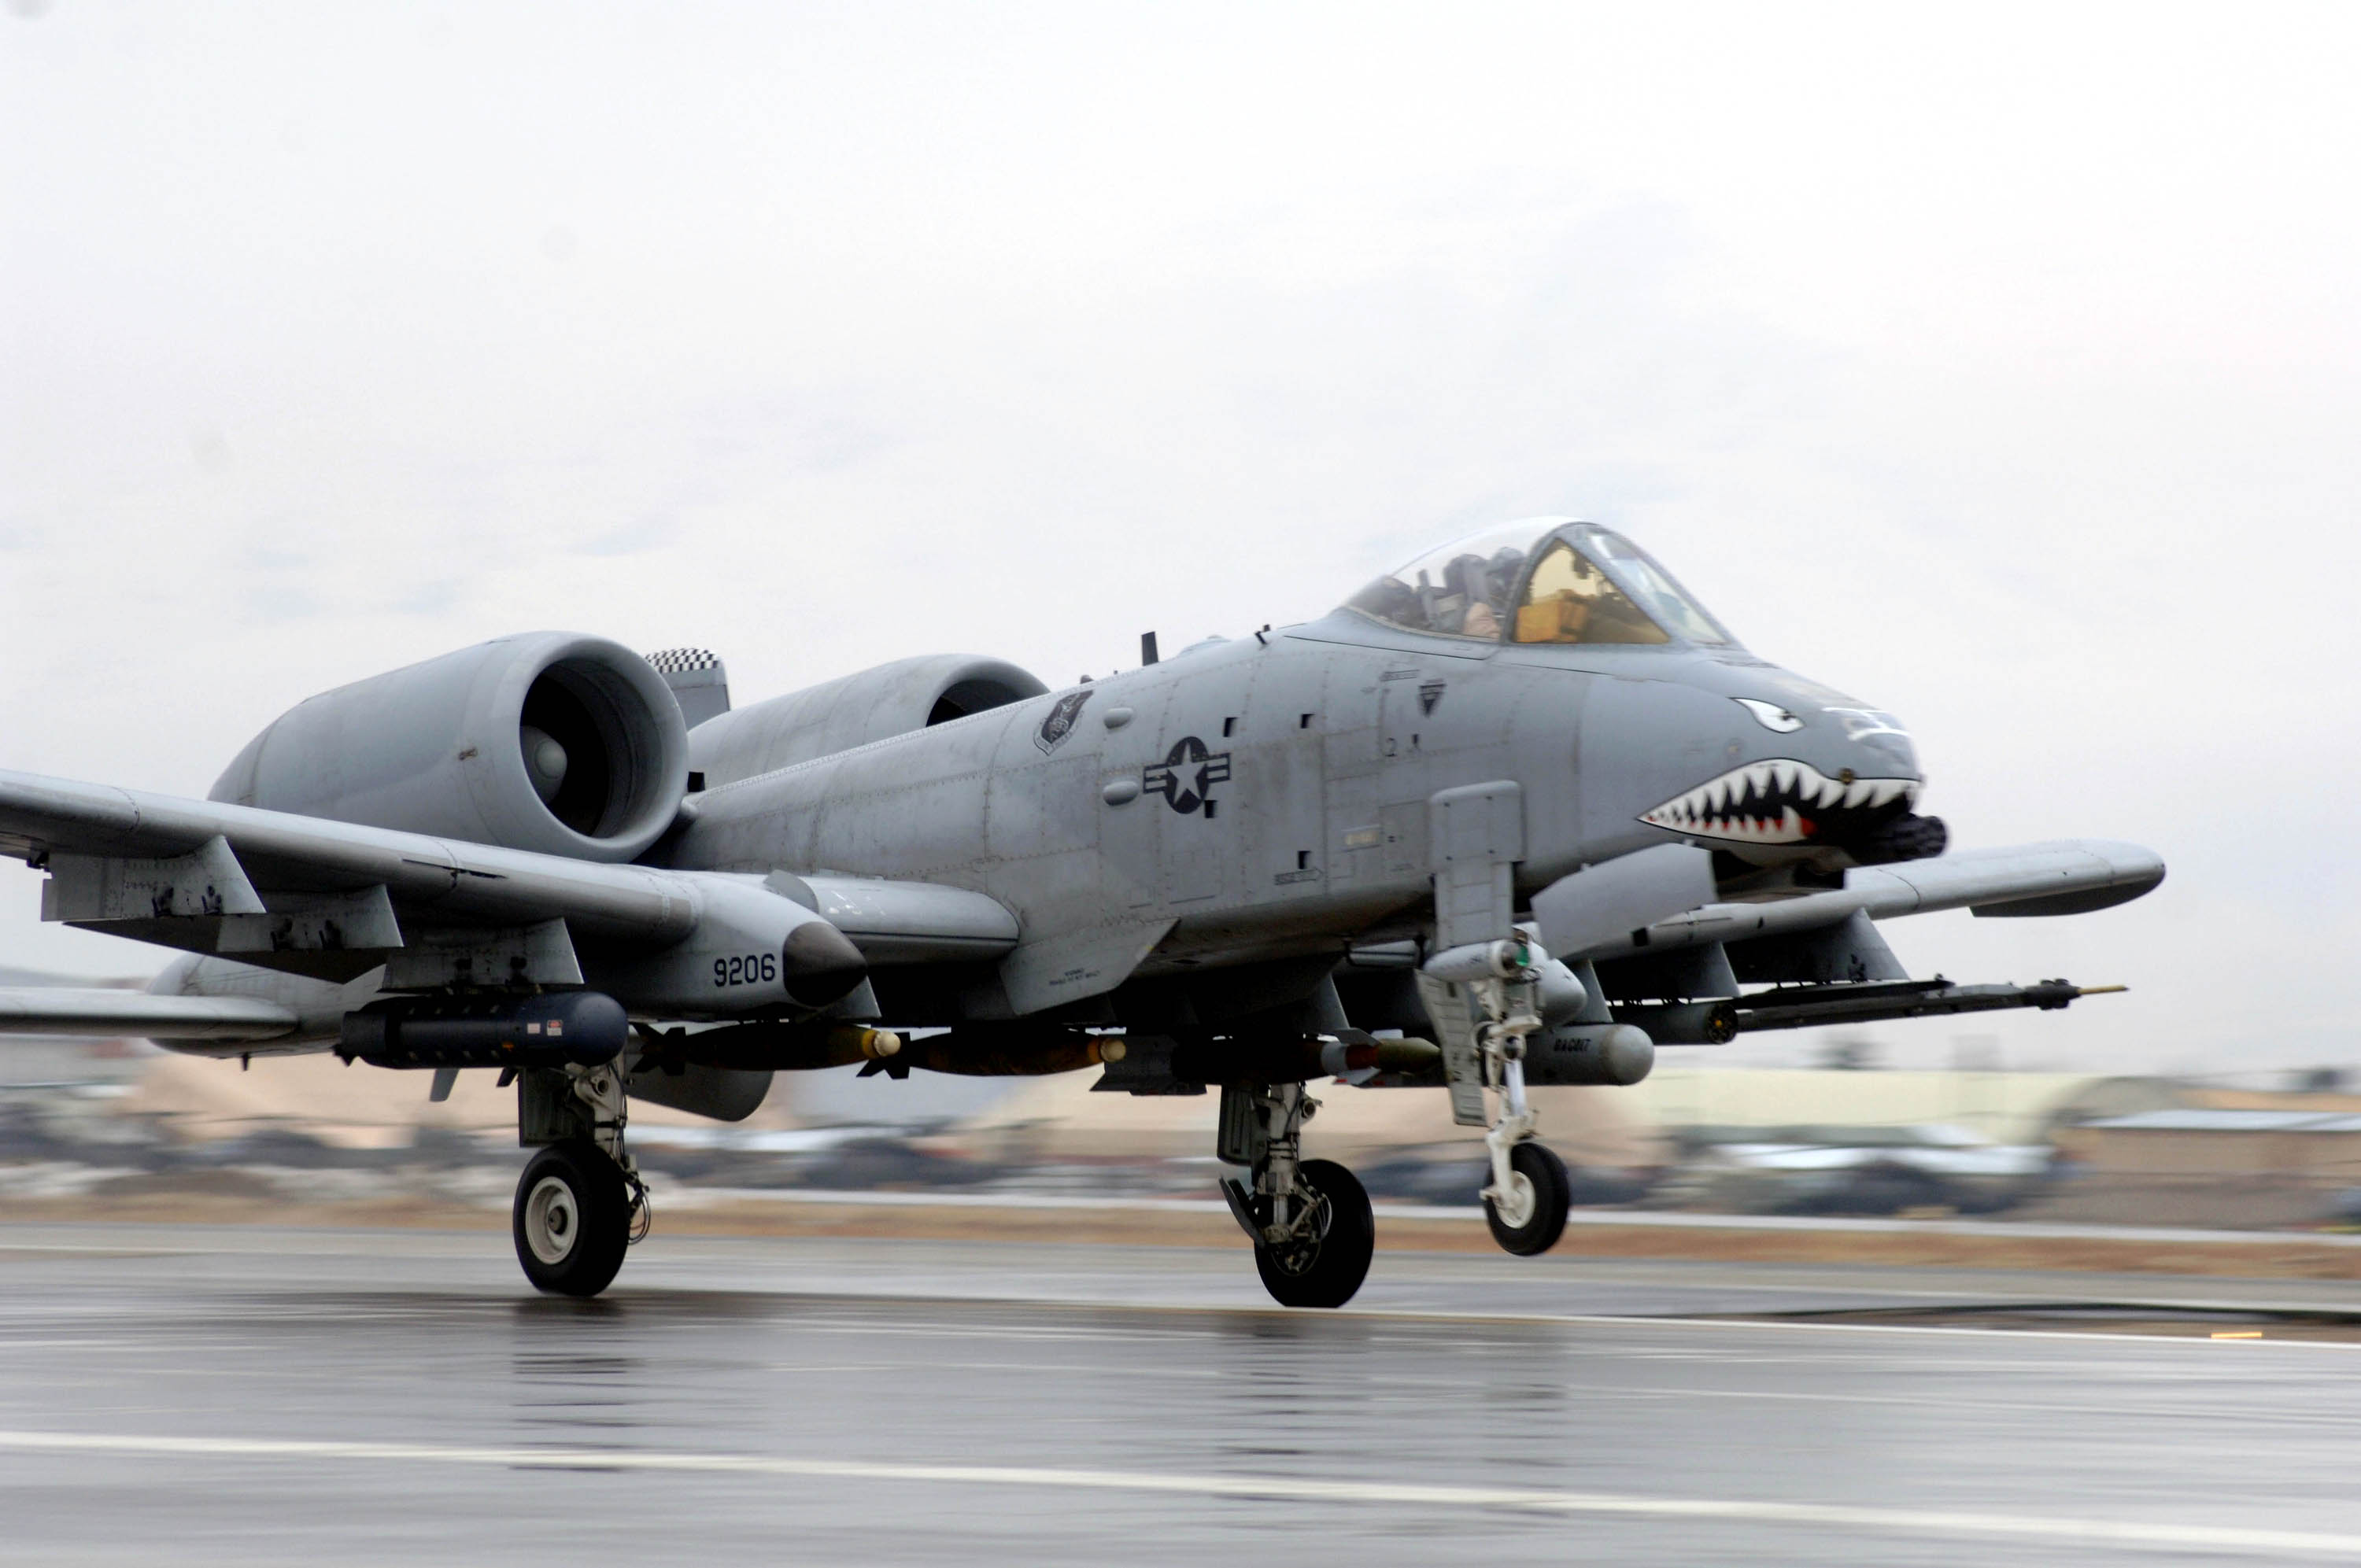 File:A-10 Thunderbolt II taking off at Bagram Air Base.jpg ...